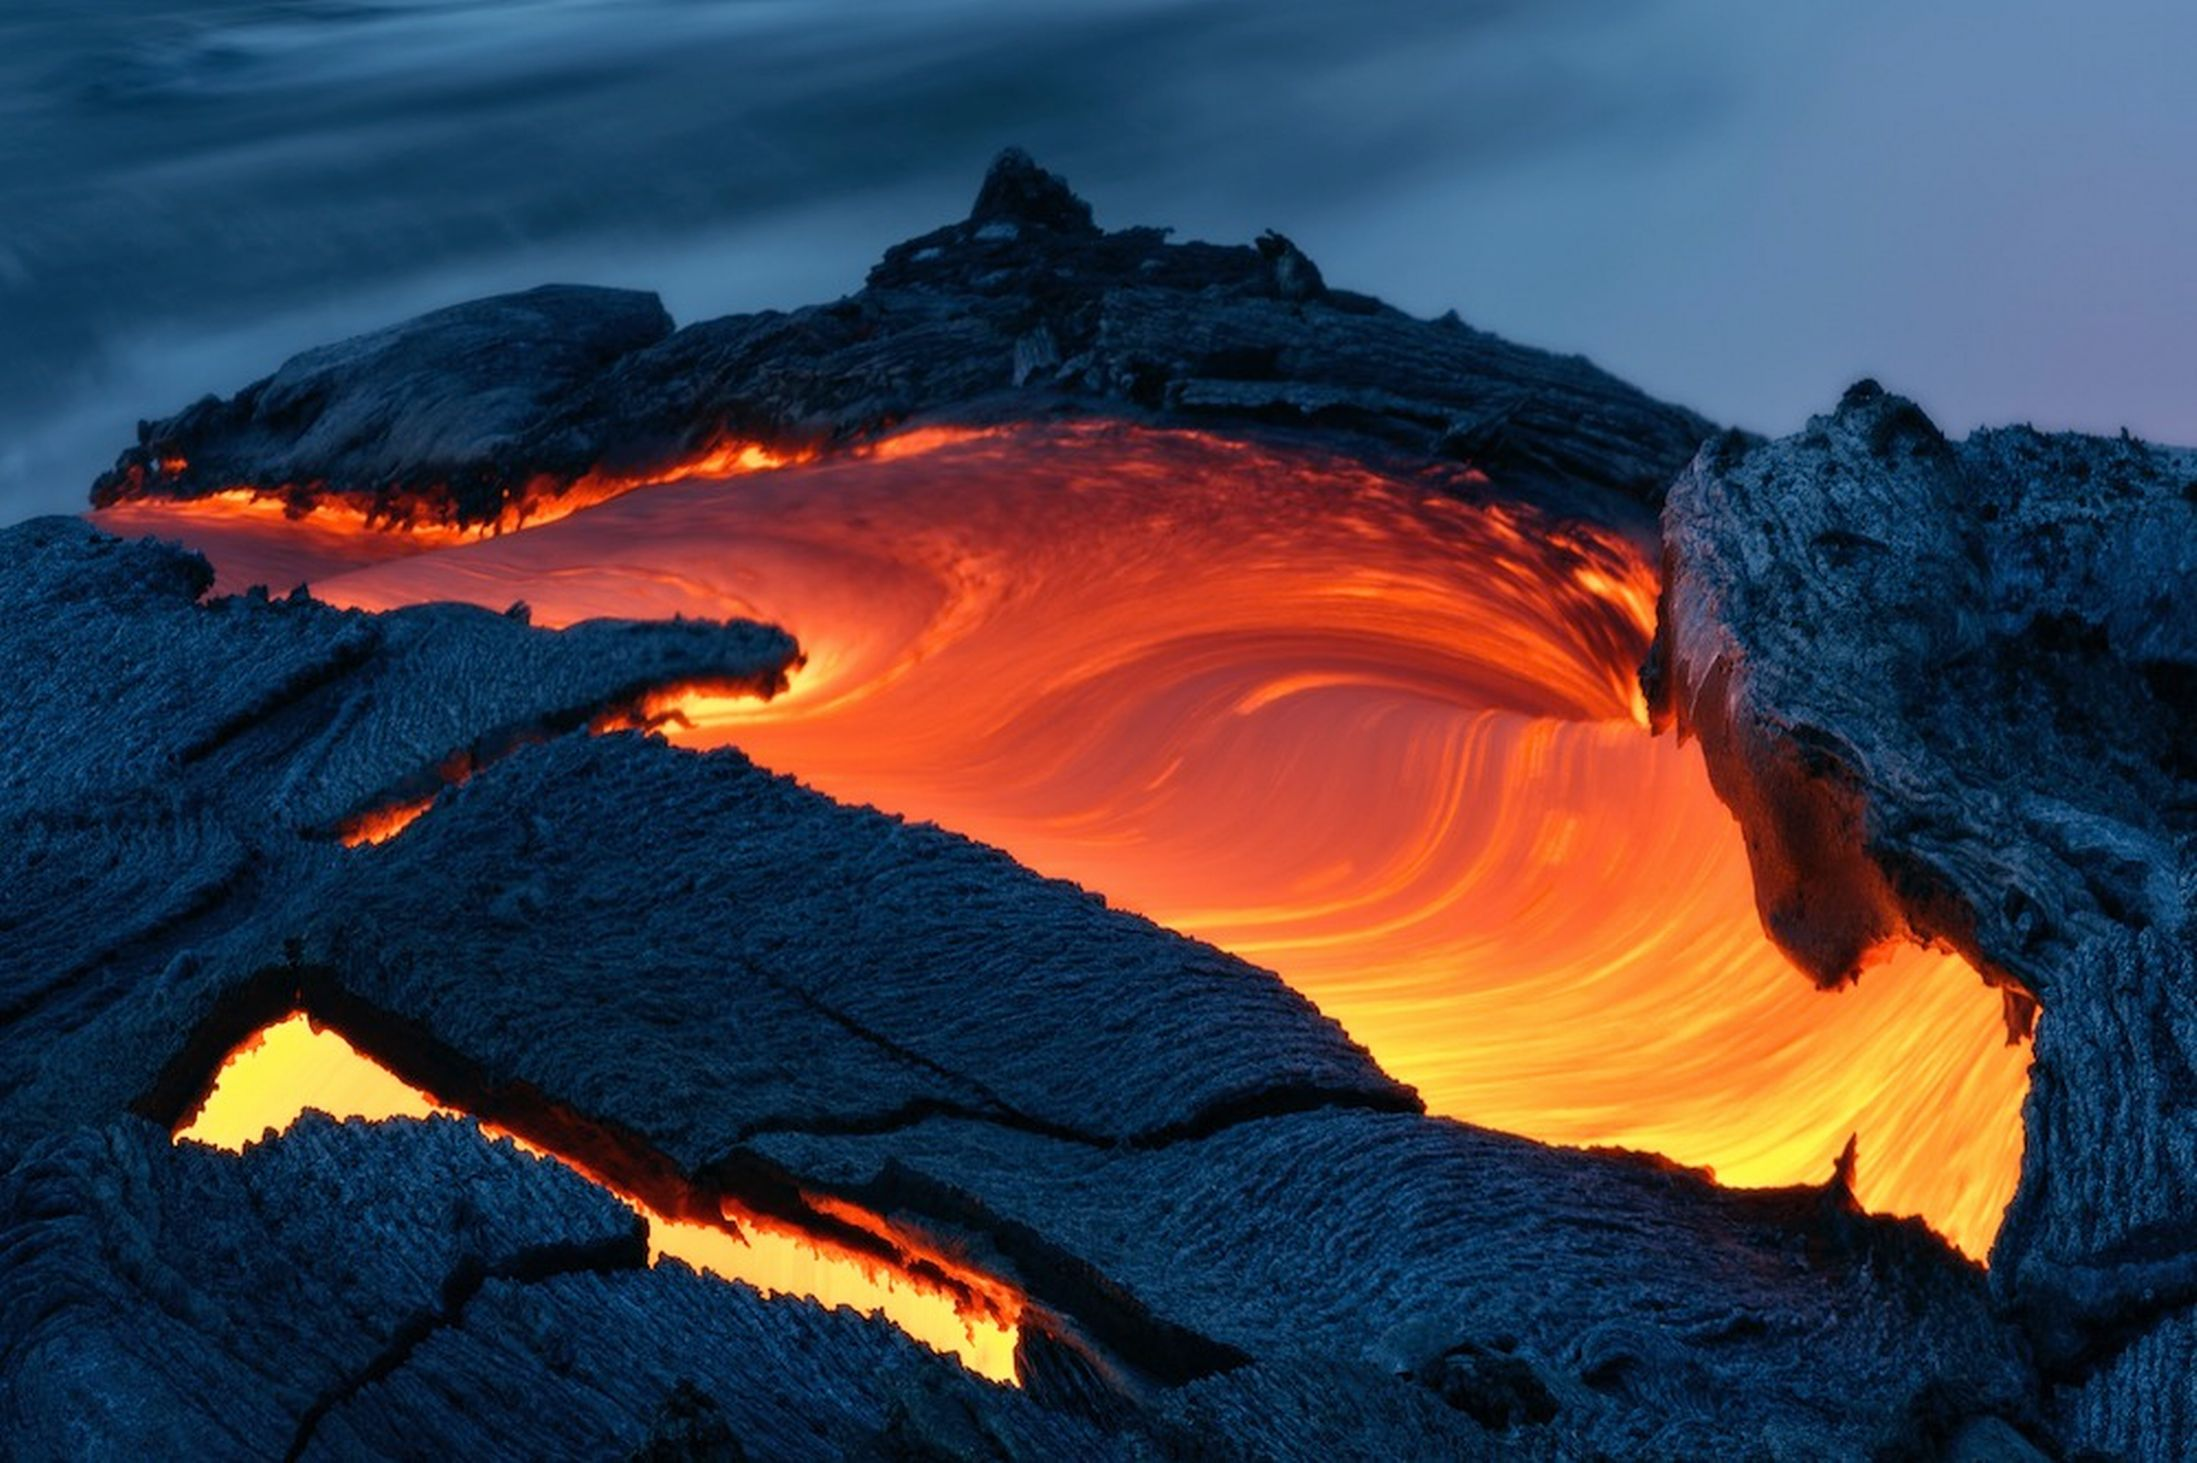 I find the Hawaiian volcano's eruption unspeakably beautiful, a thing of wonder